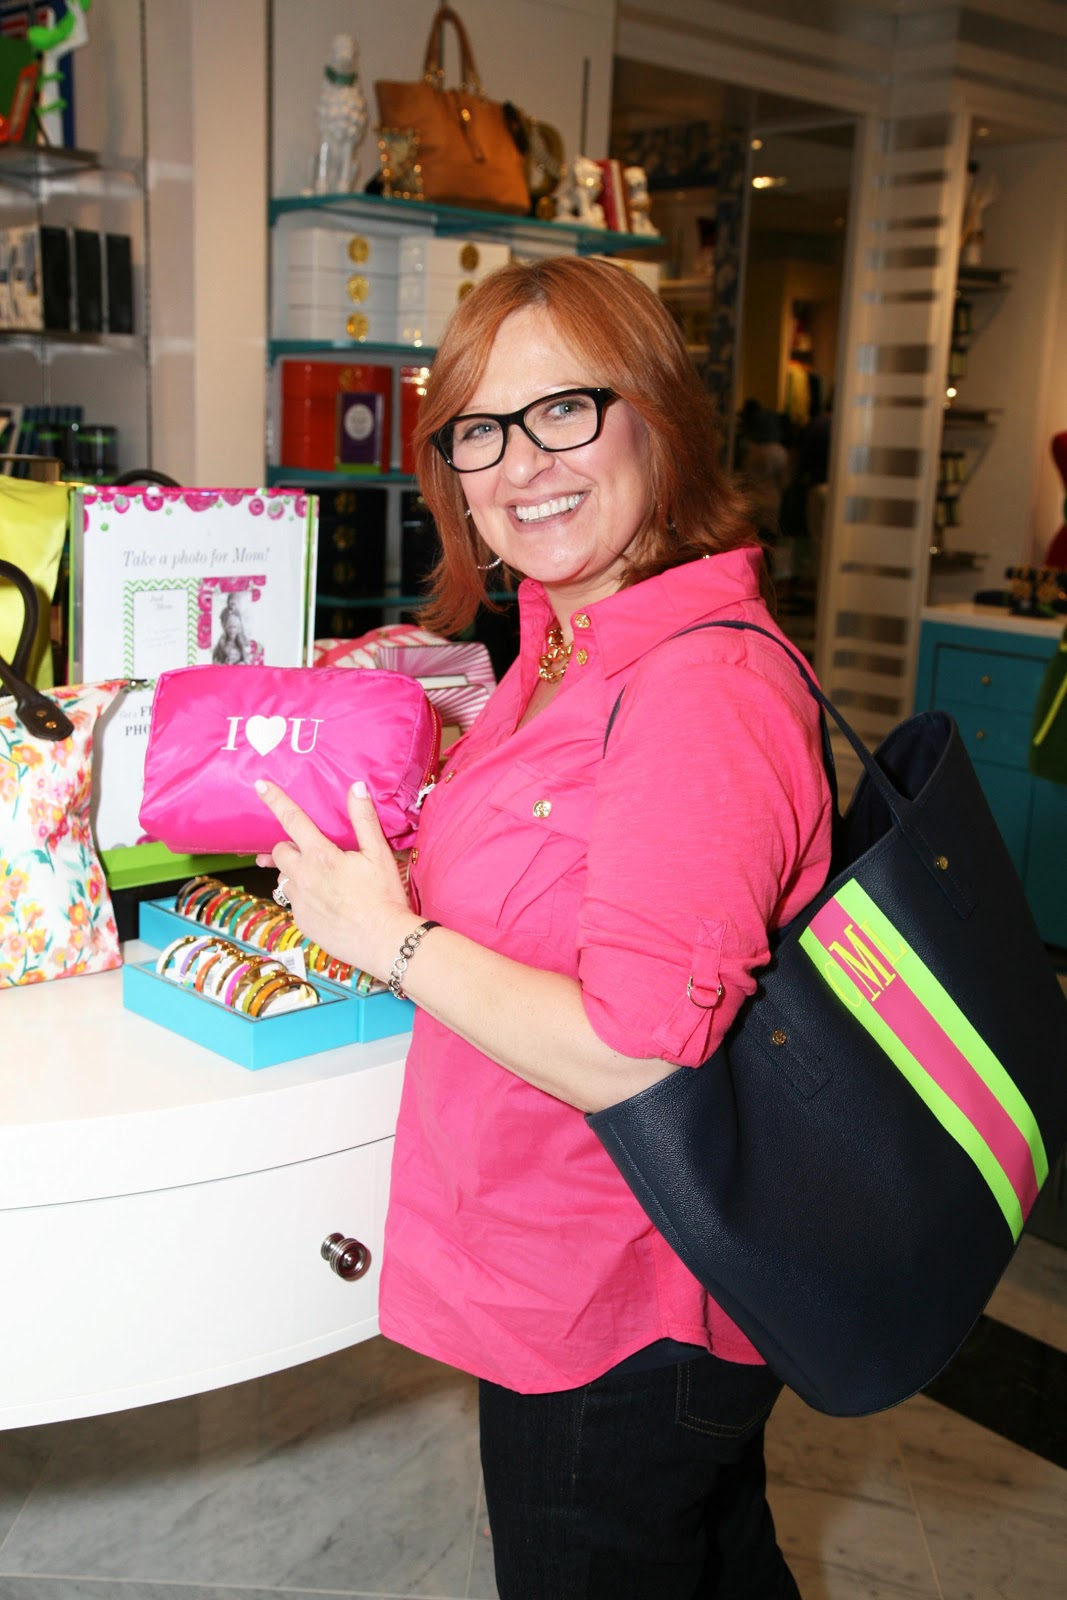 Exclusive: Caroline Manzo Talks About Her Upcoming Book